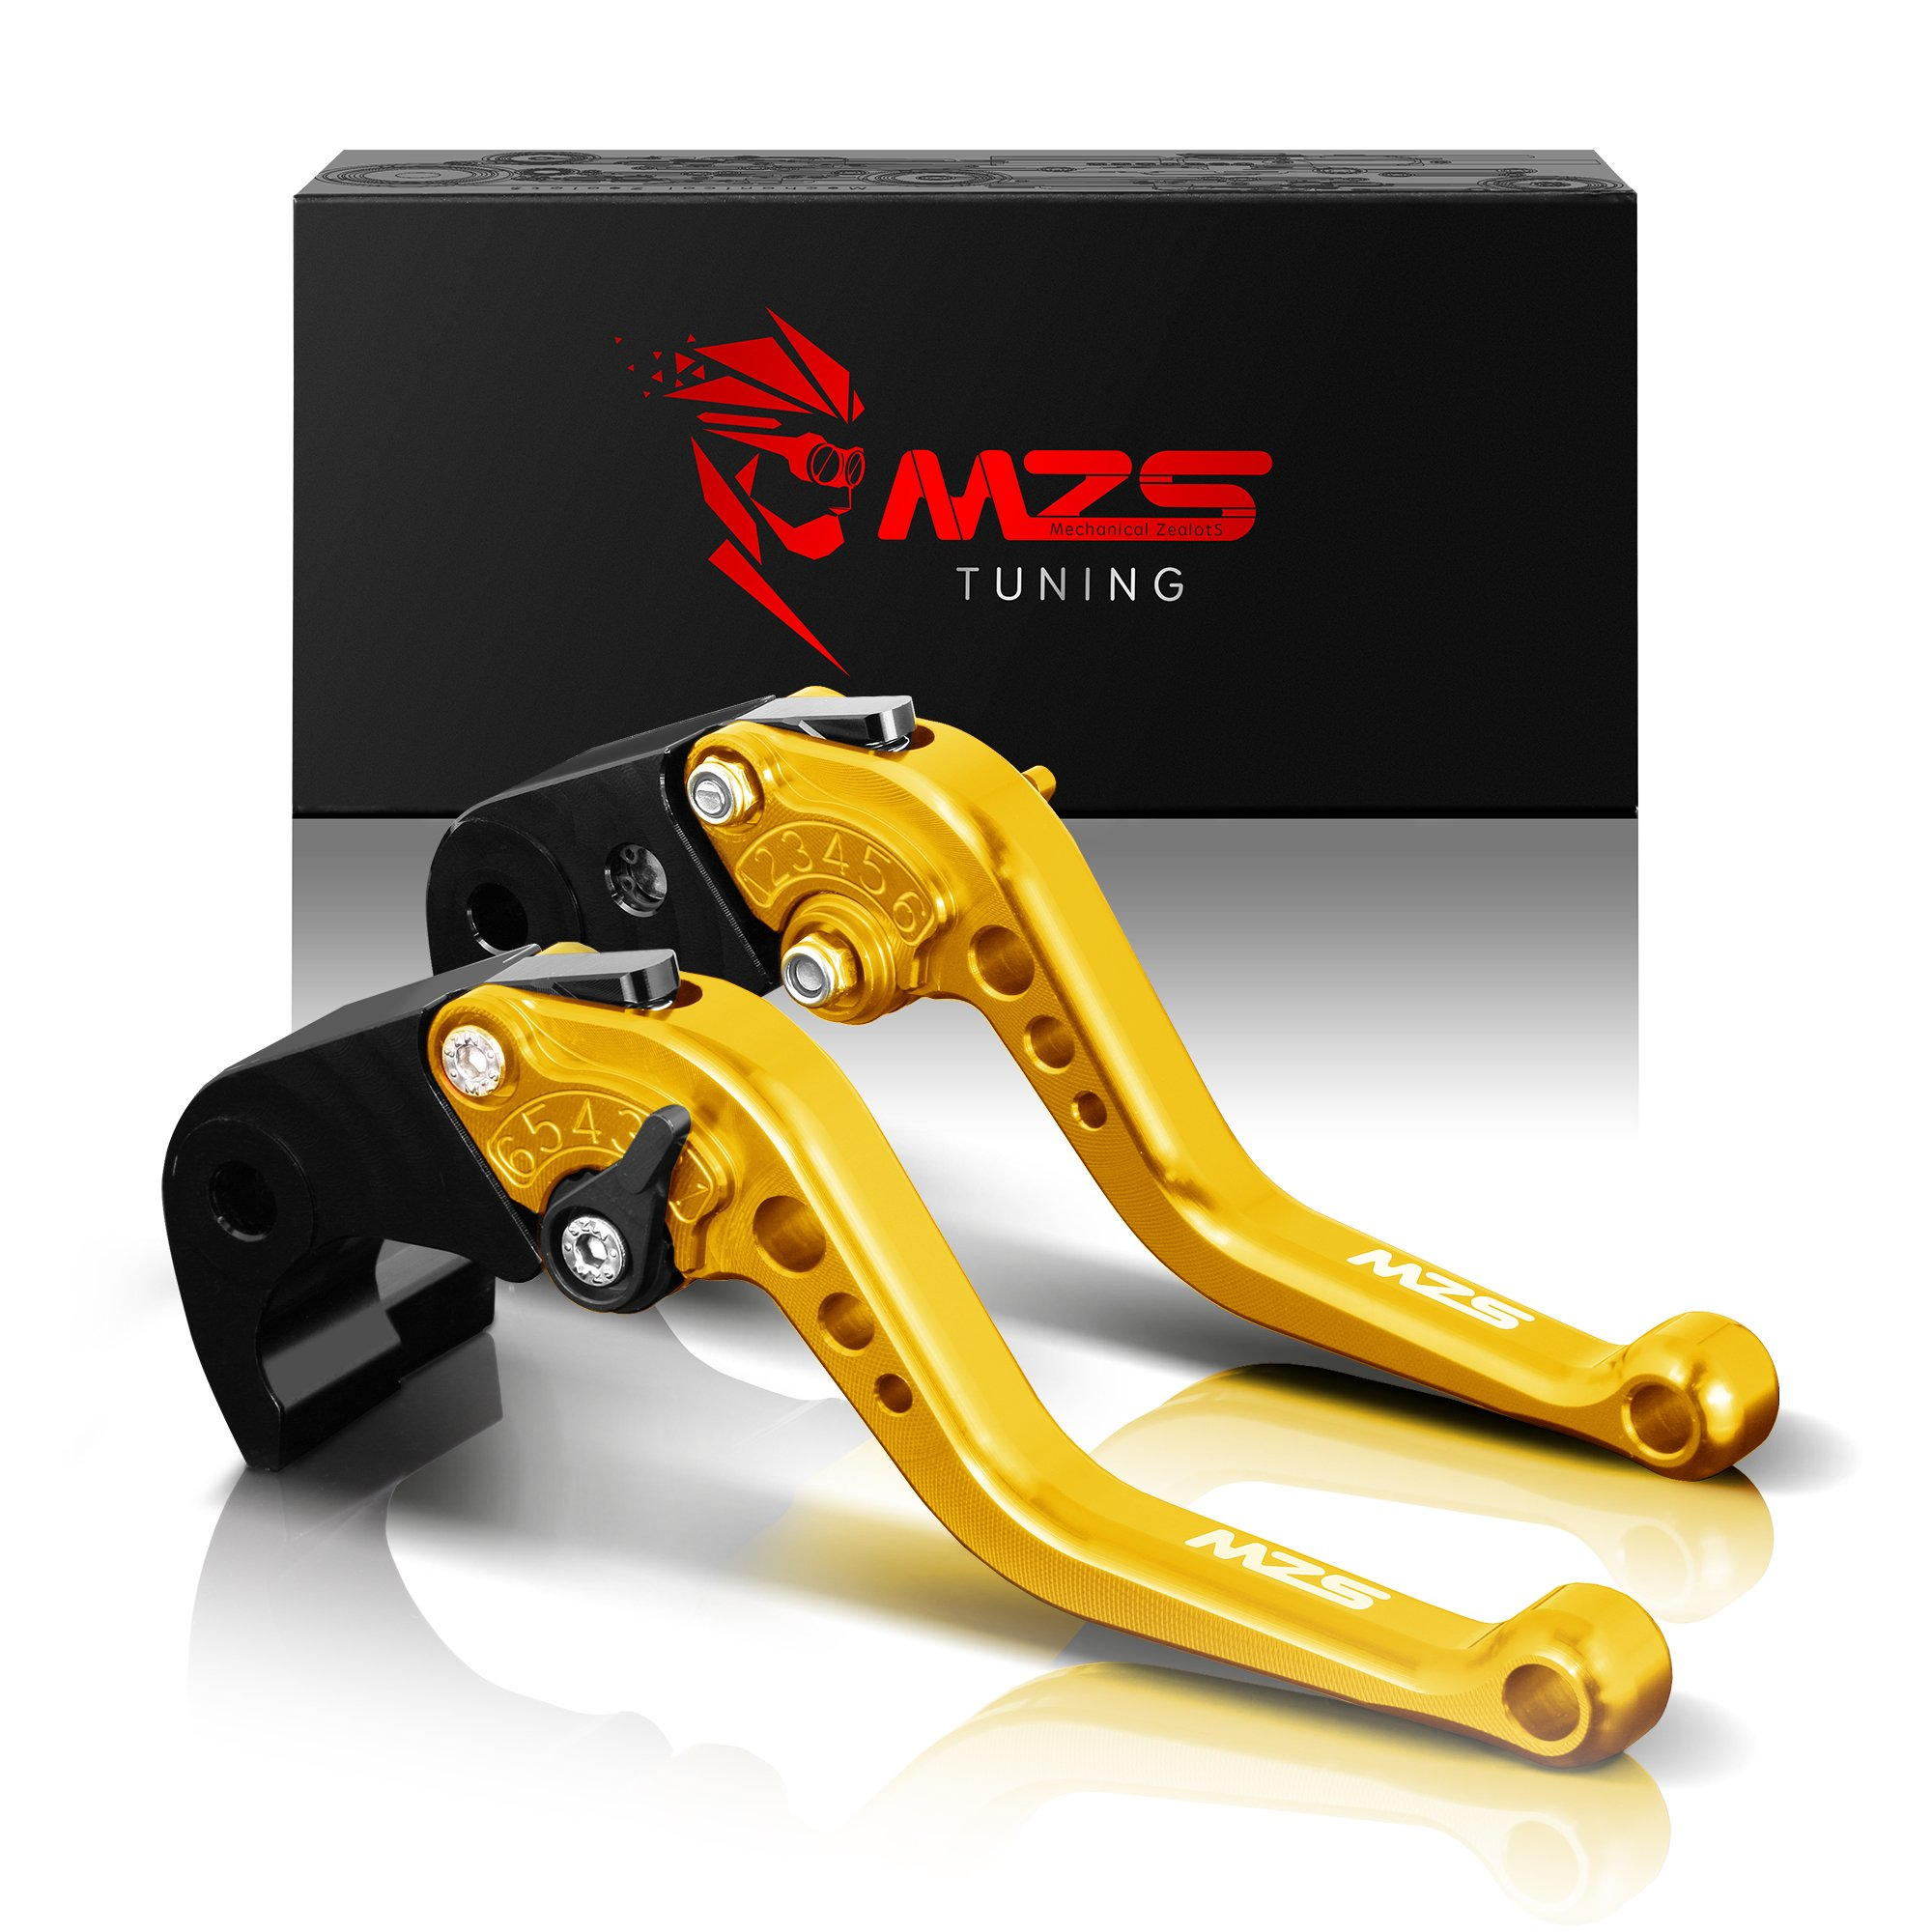 MZS Short Levers Brake Clutch CNC compatible Honda GROM MSX125 JC61 MLHJC618 2014 2015 2016 2017 2018 2019 Gold by MZS